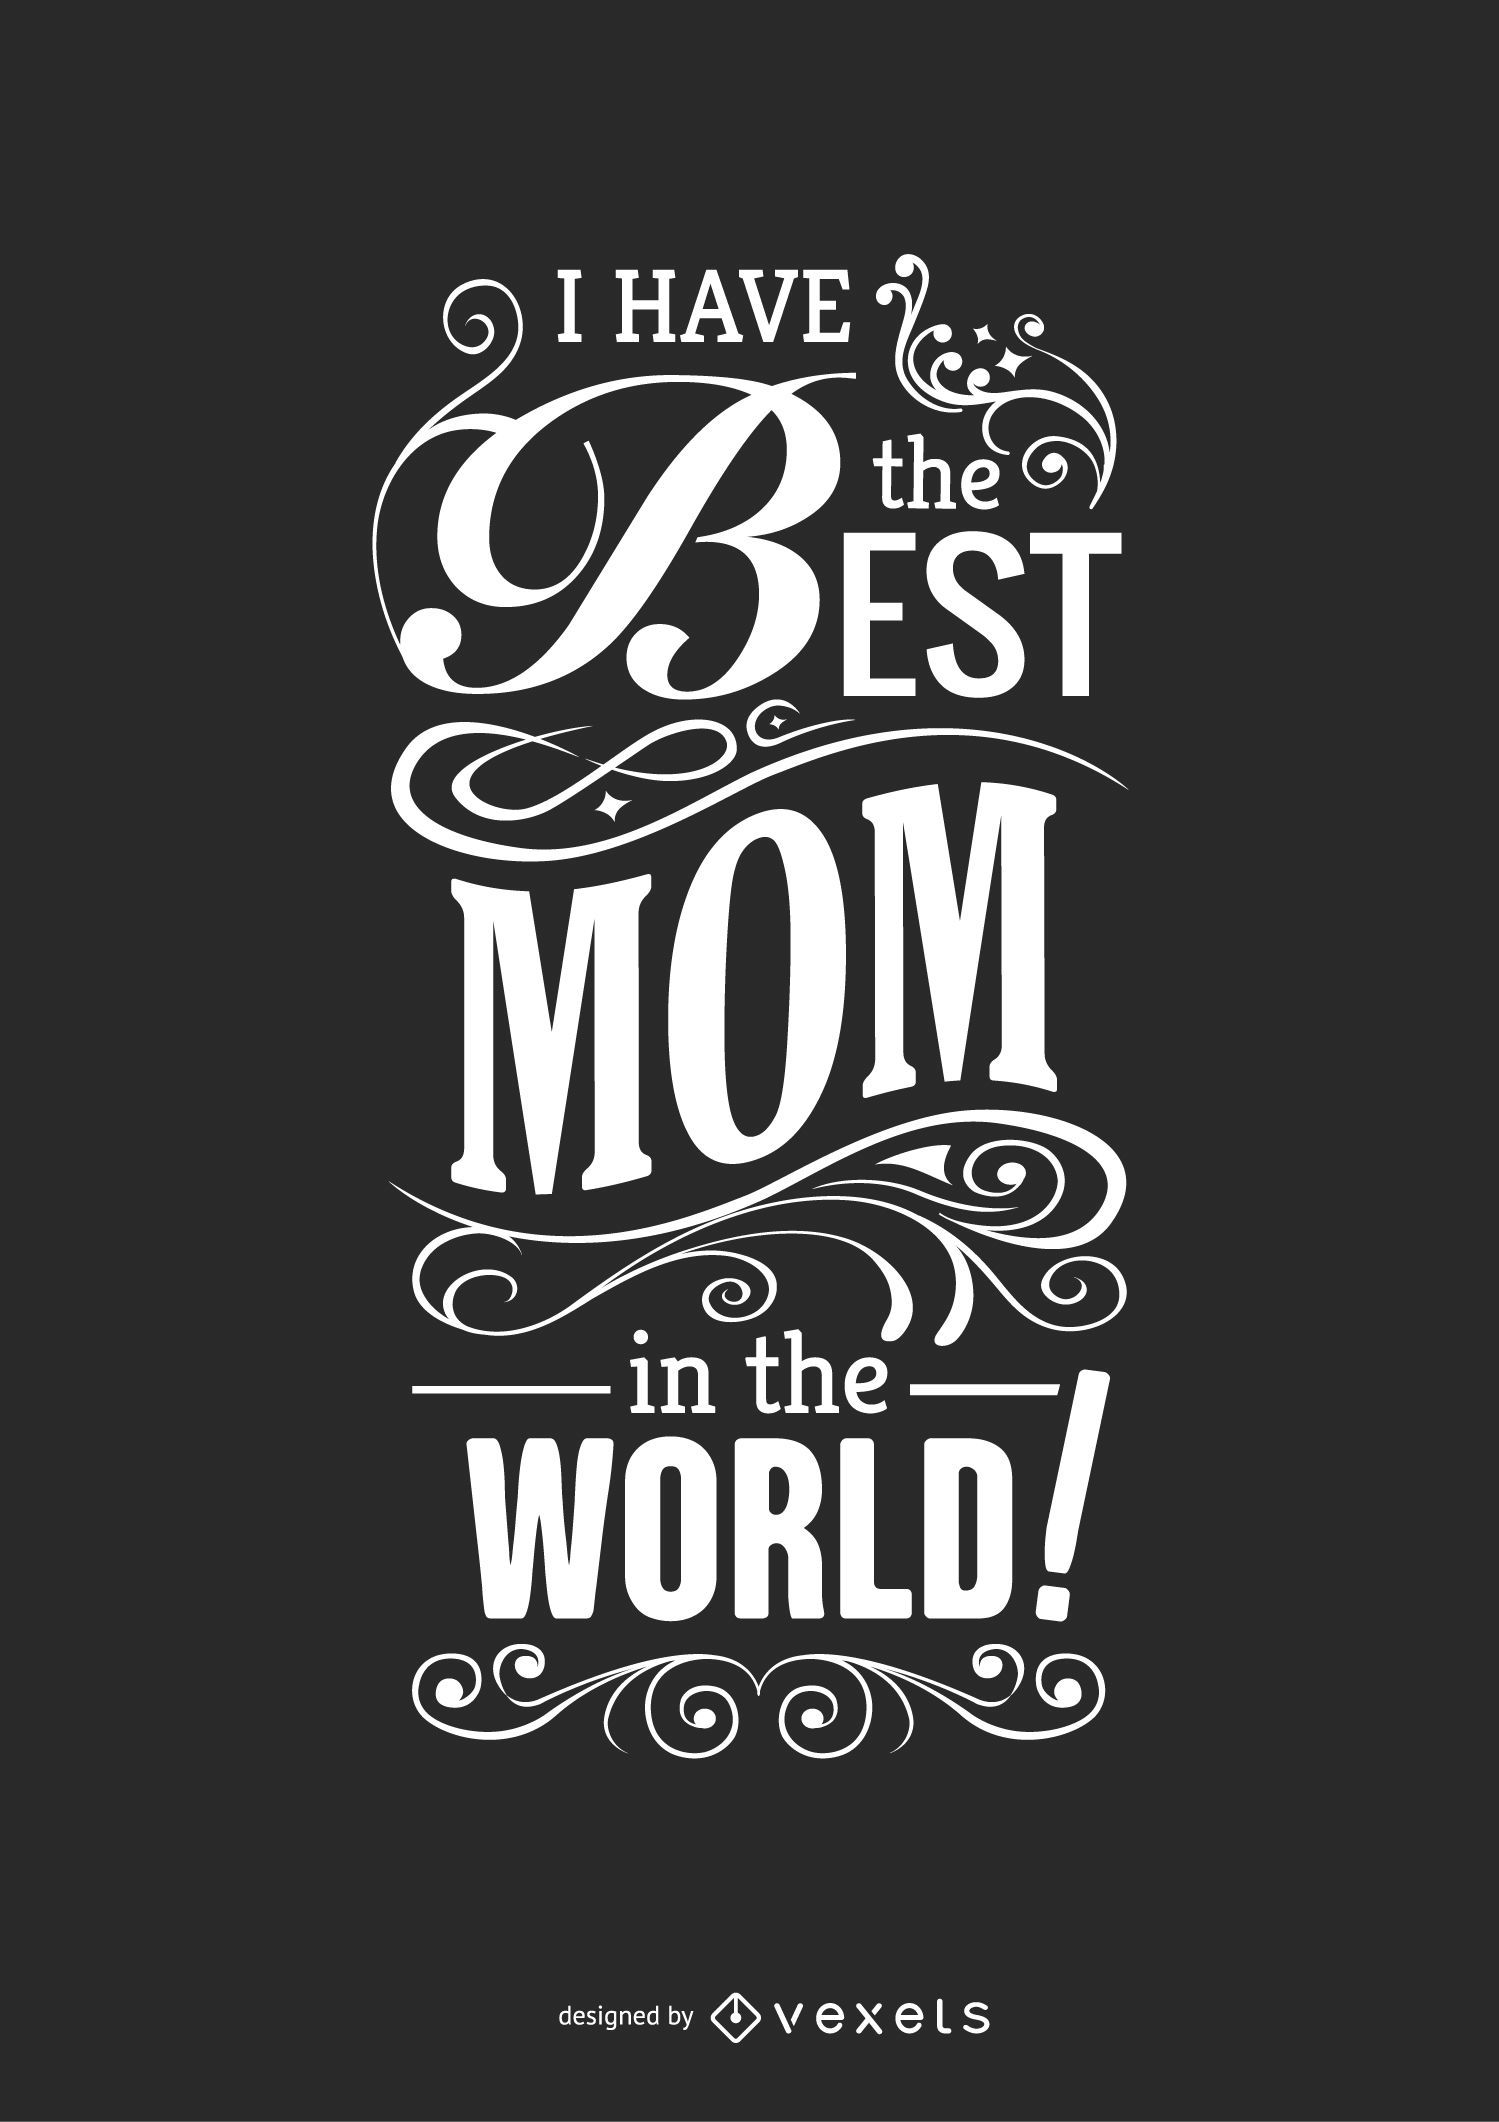 Best mom in the world quote - Vector download